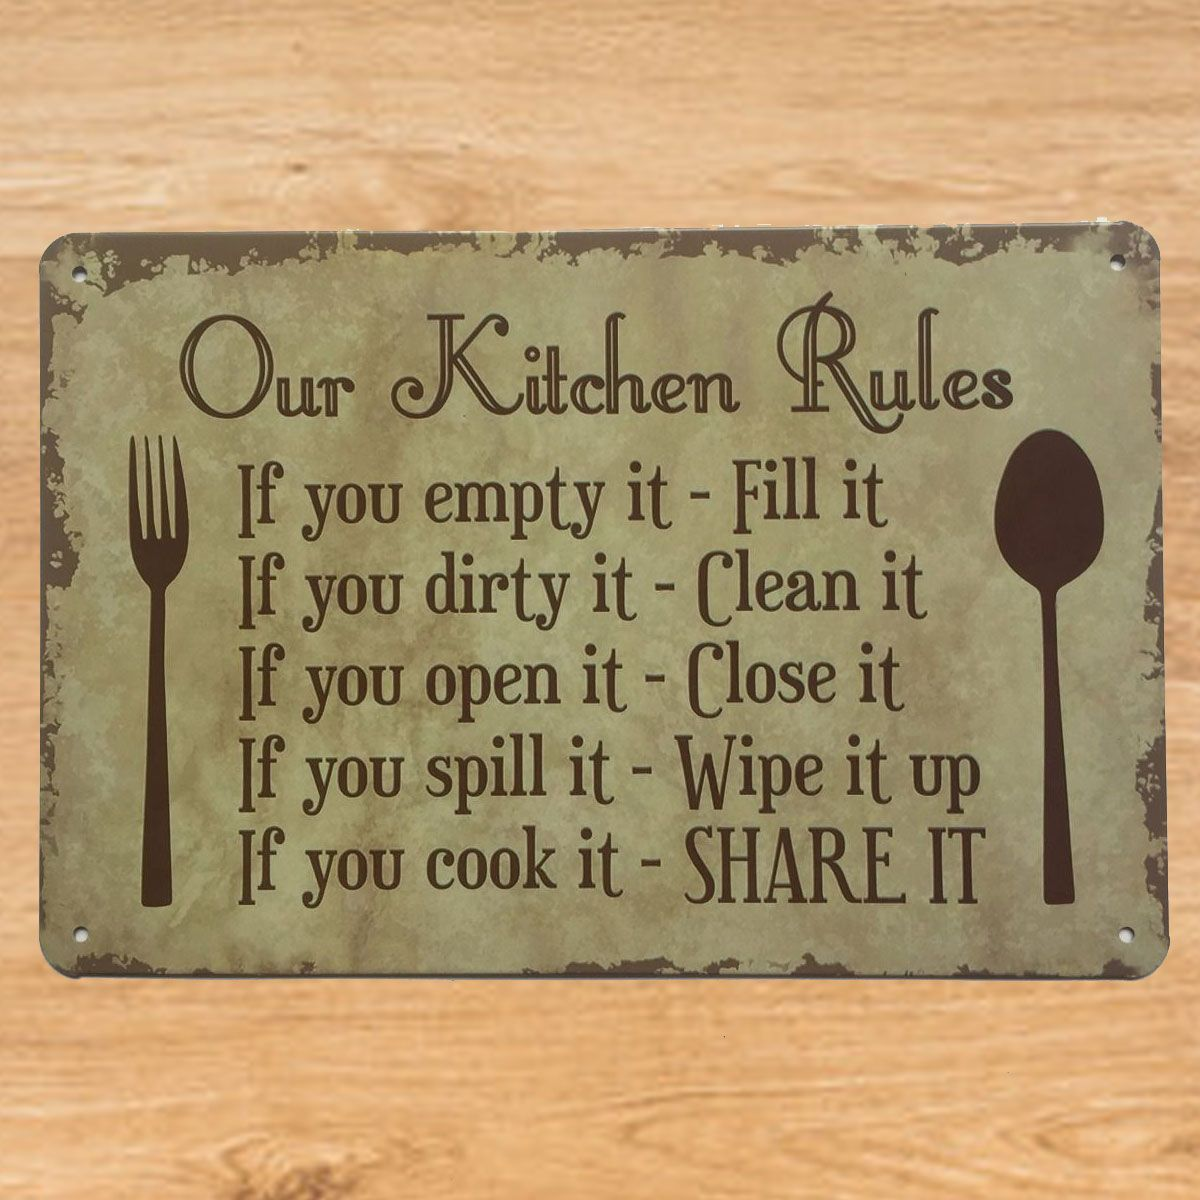 OUR KITCHEN RULES SIGN #kitchenrules OUR KITCHEN RULES SIGN #kitchenrules